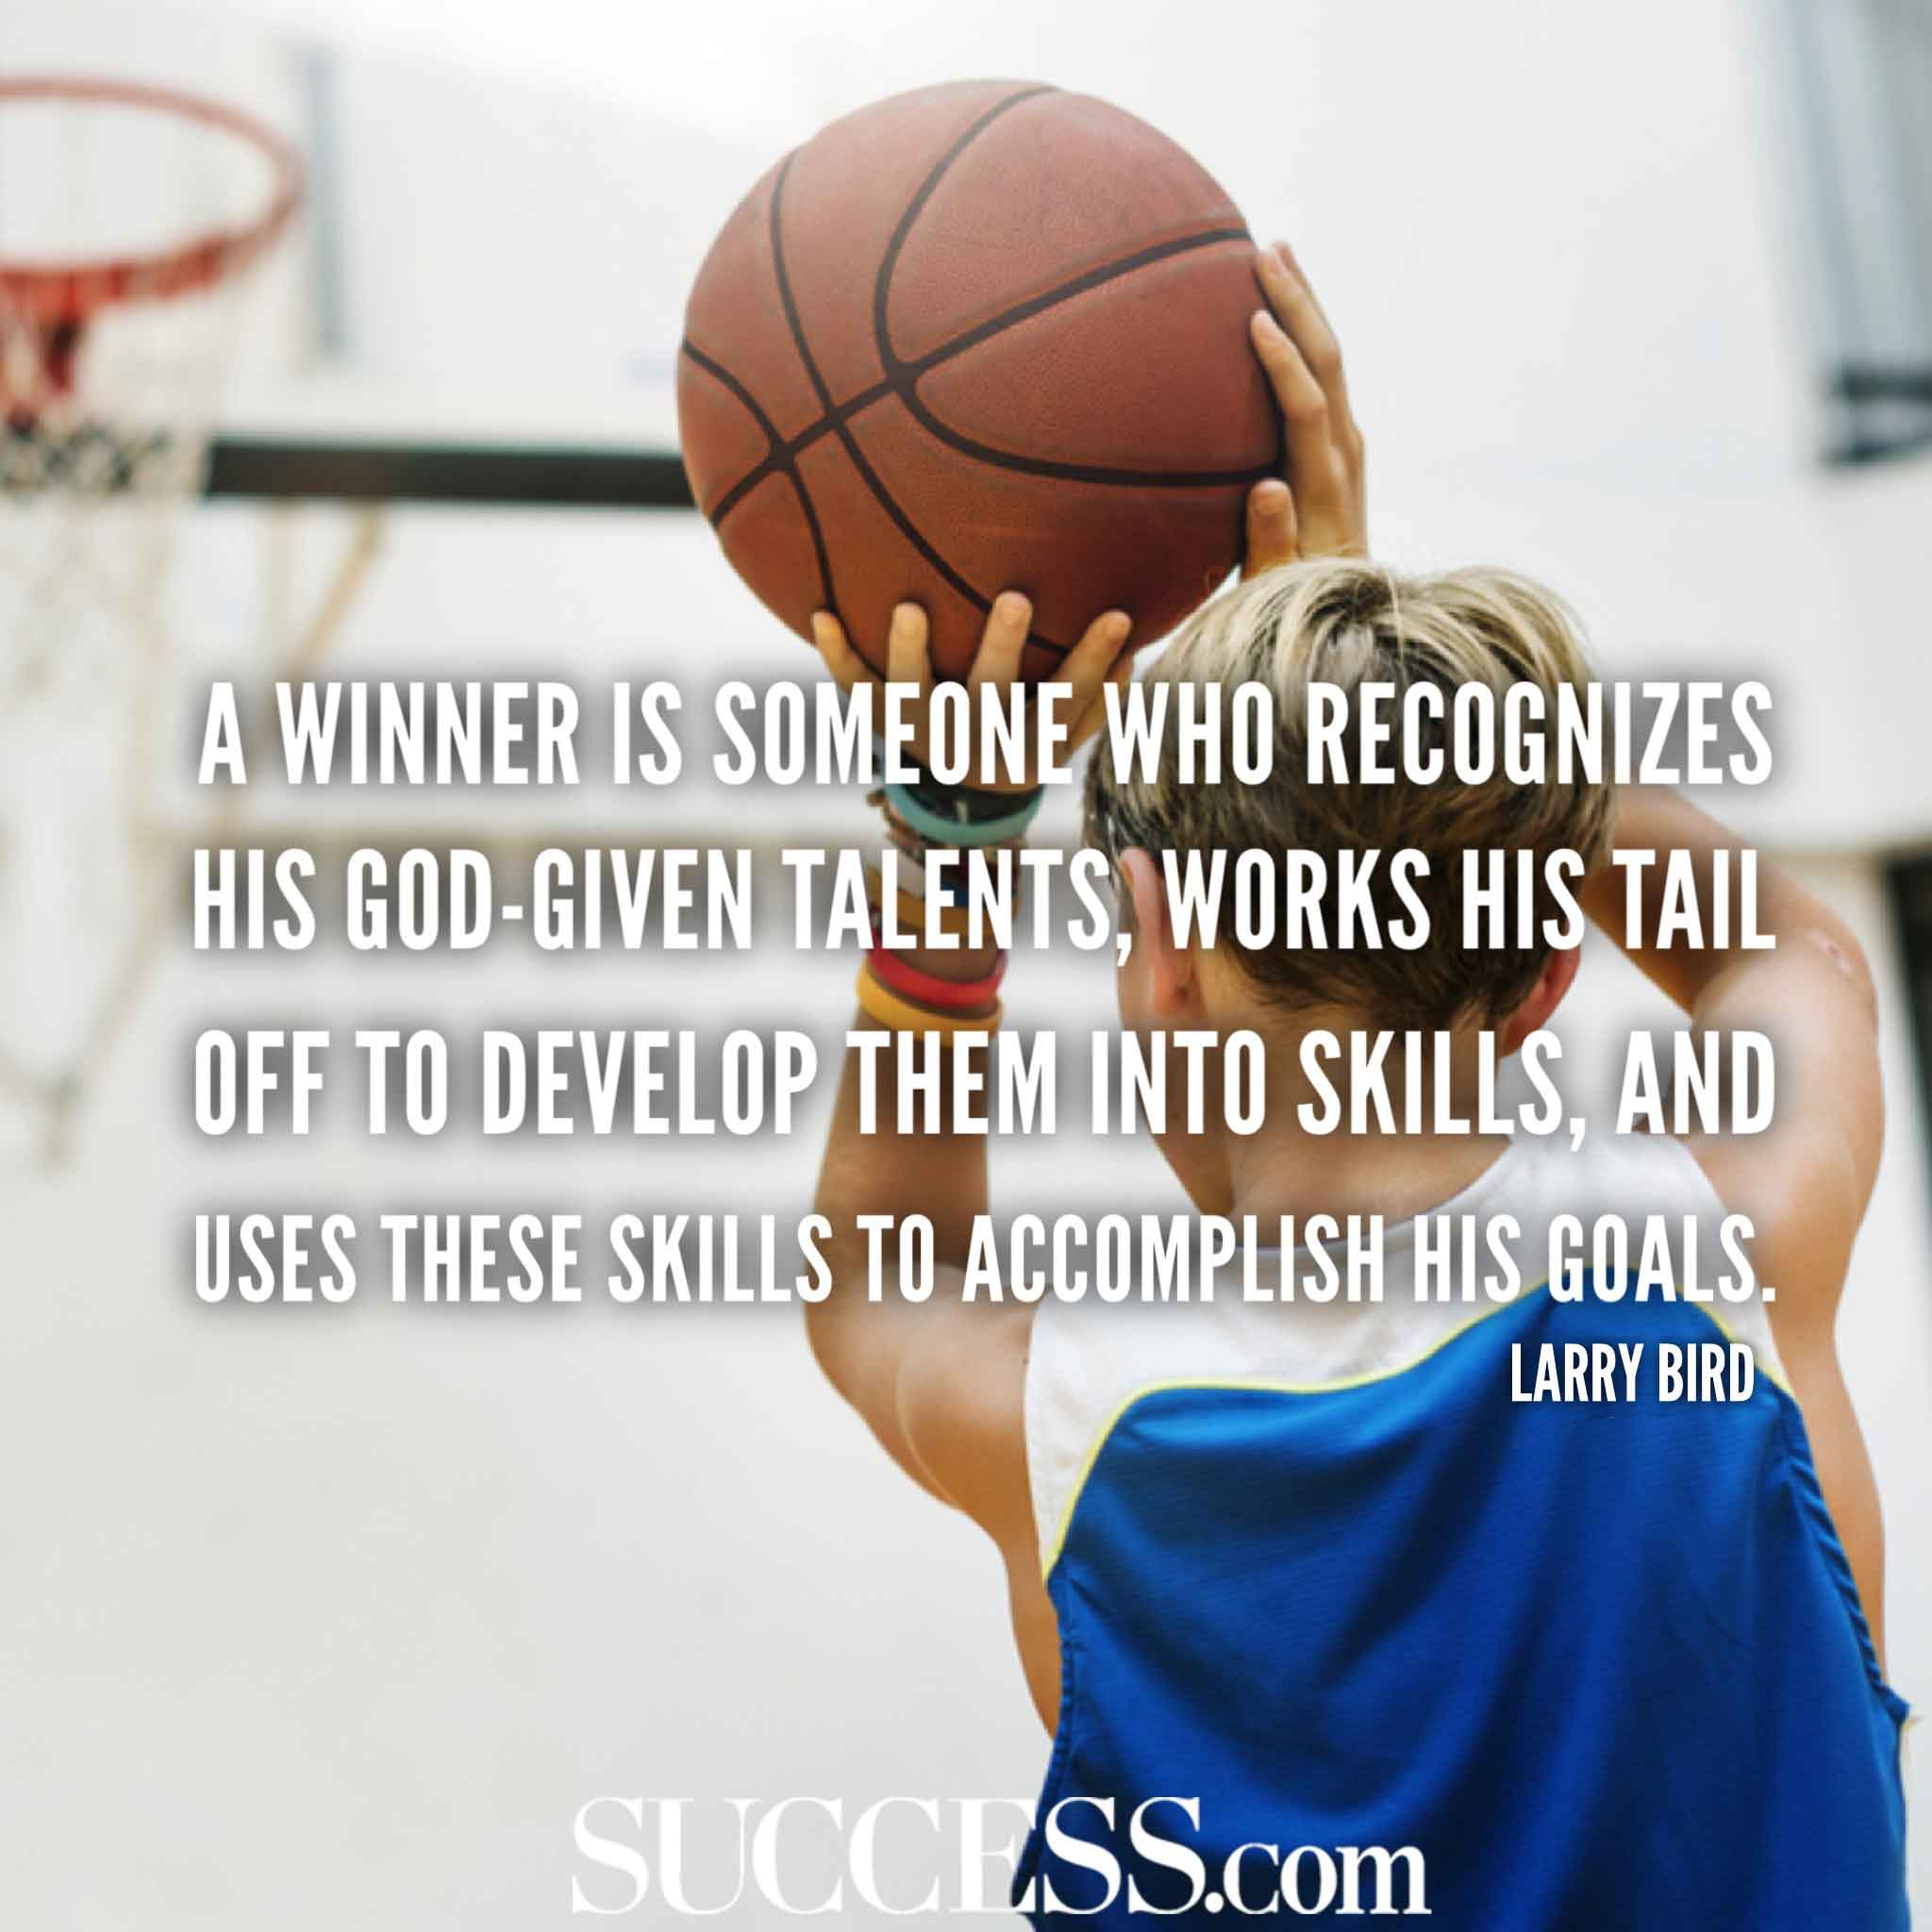 Basketball Championship Quotes: 13 Motivational Quotes About Winning